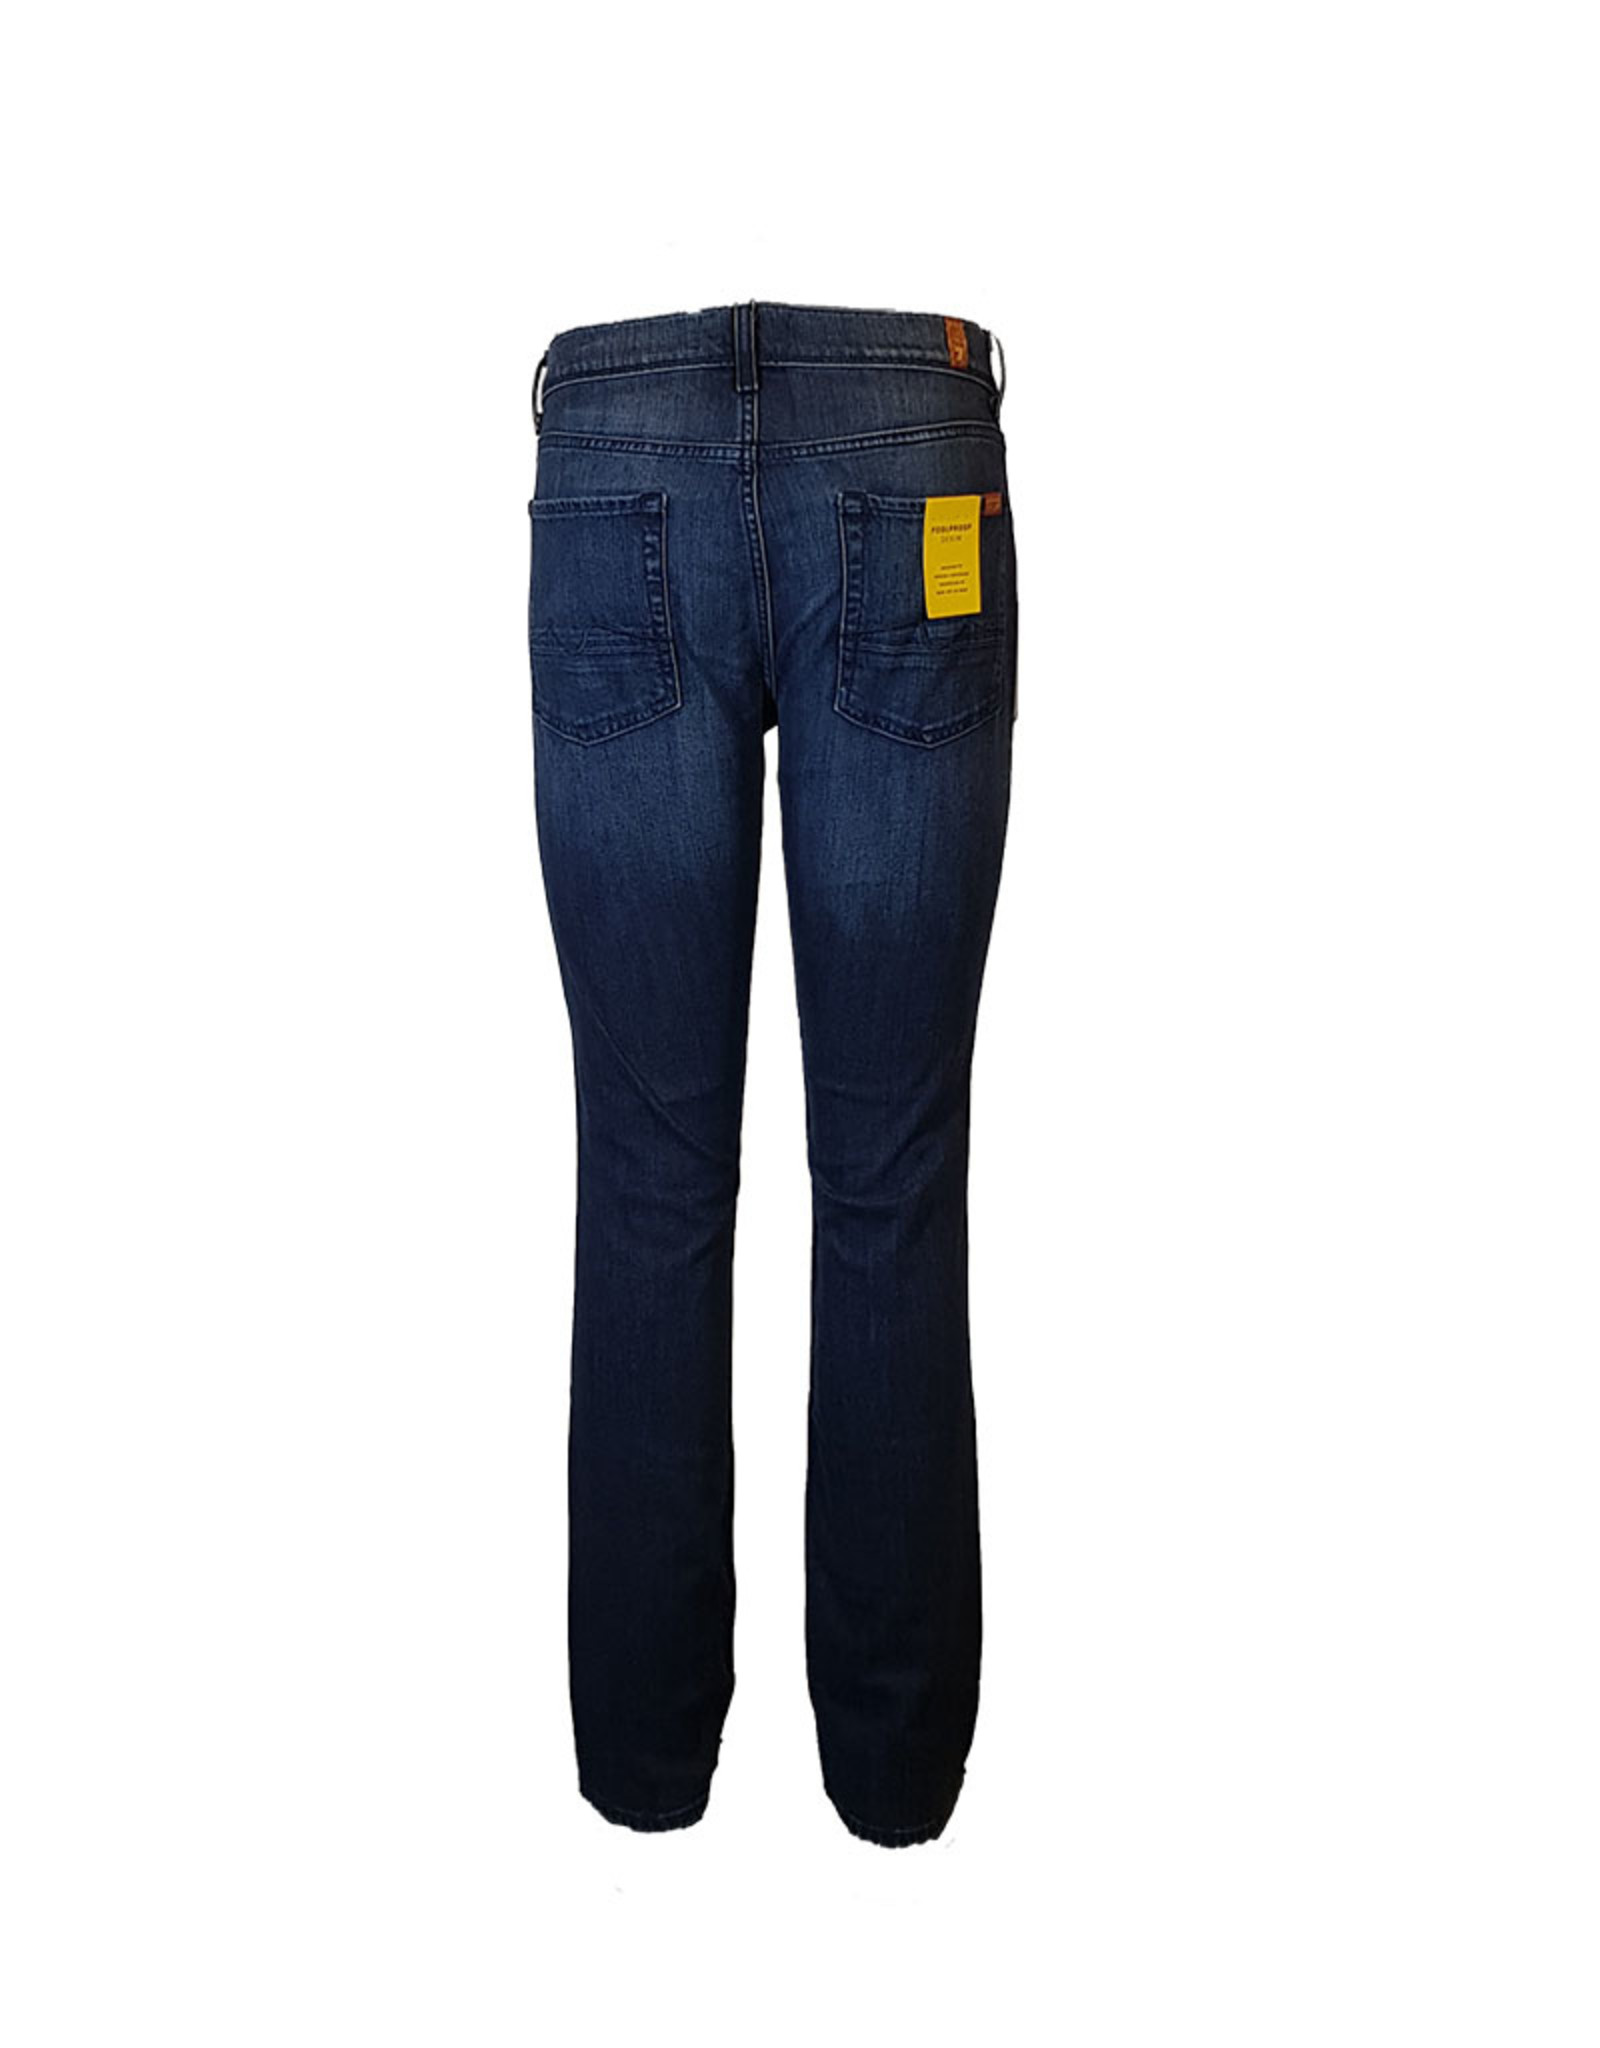 7 For All Mankind 7FAM jeans blauw Slimmy SMSU050AD